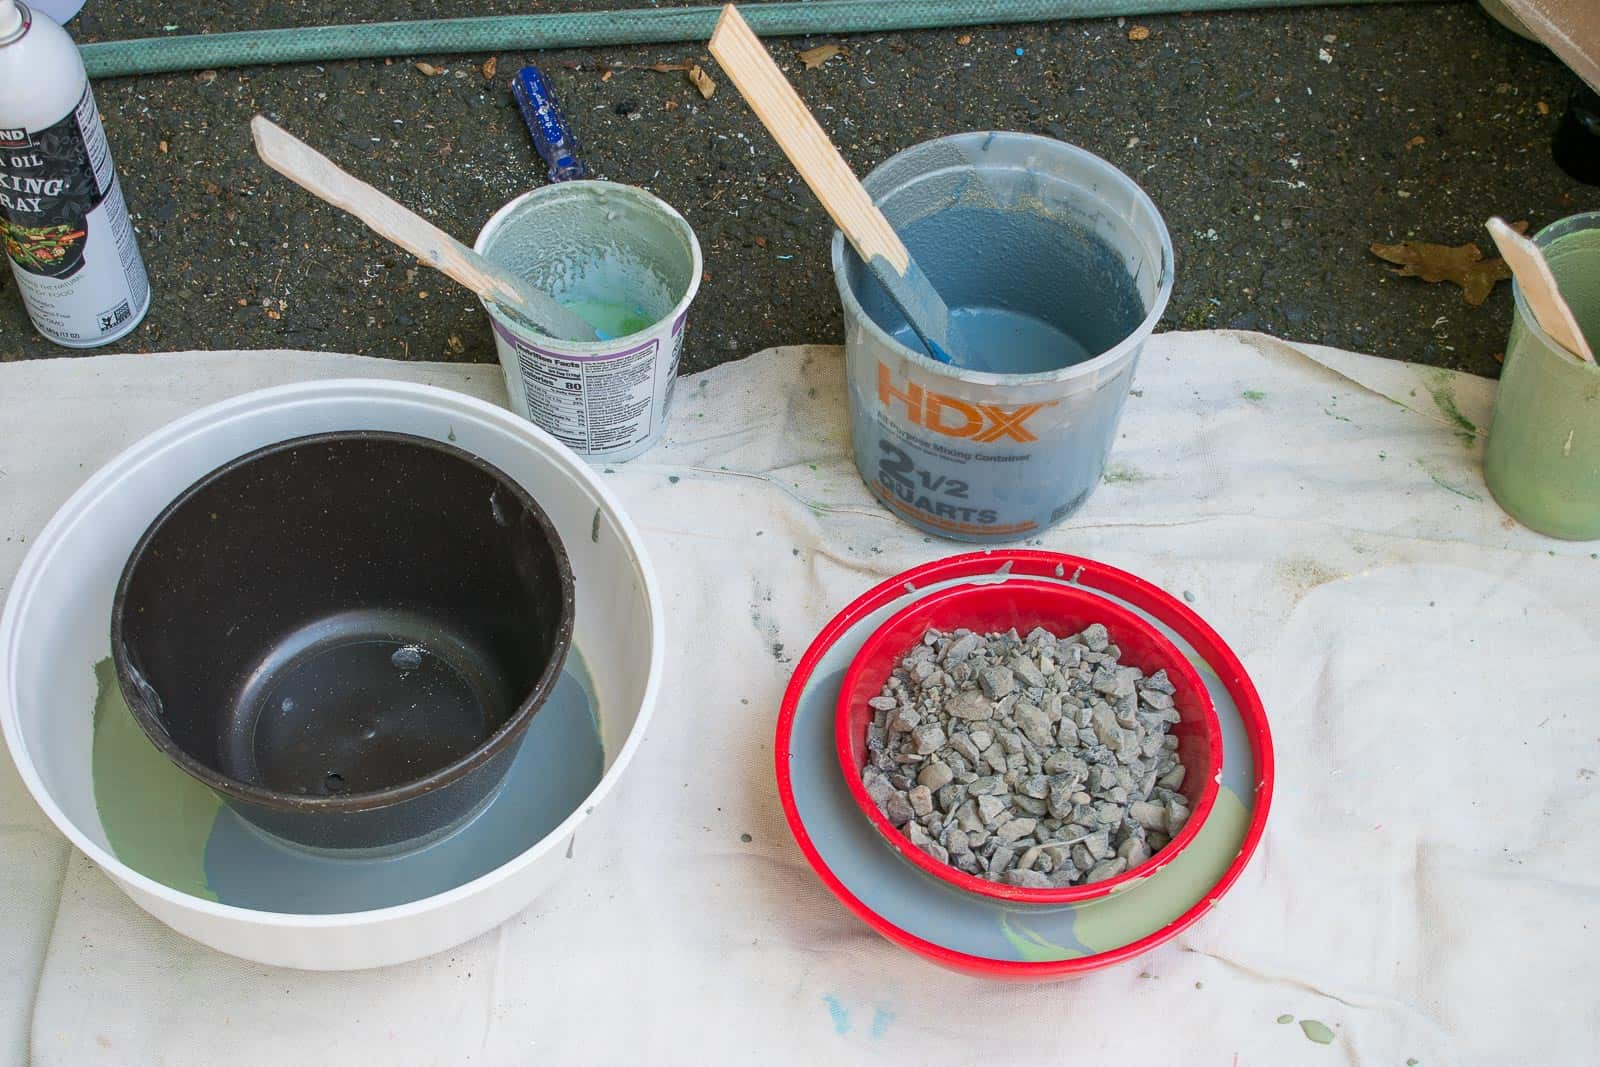 prep the bowls and pour cement